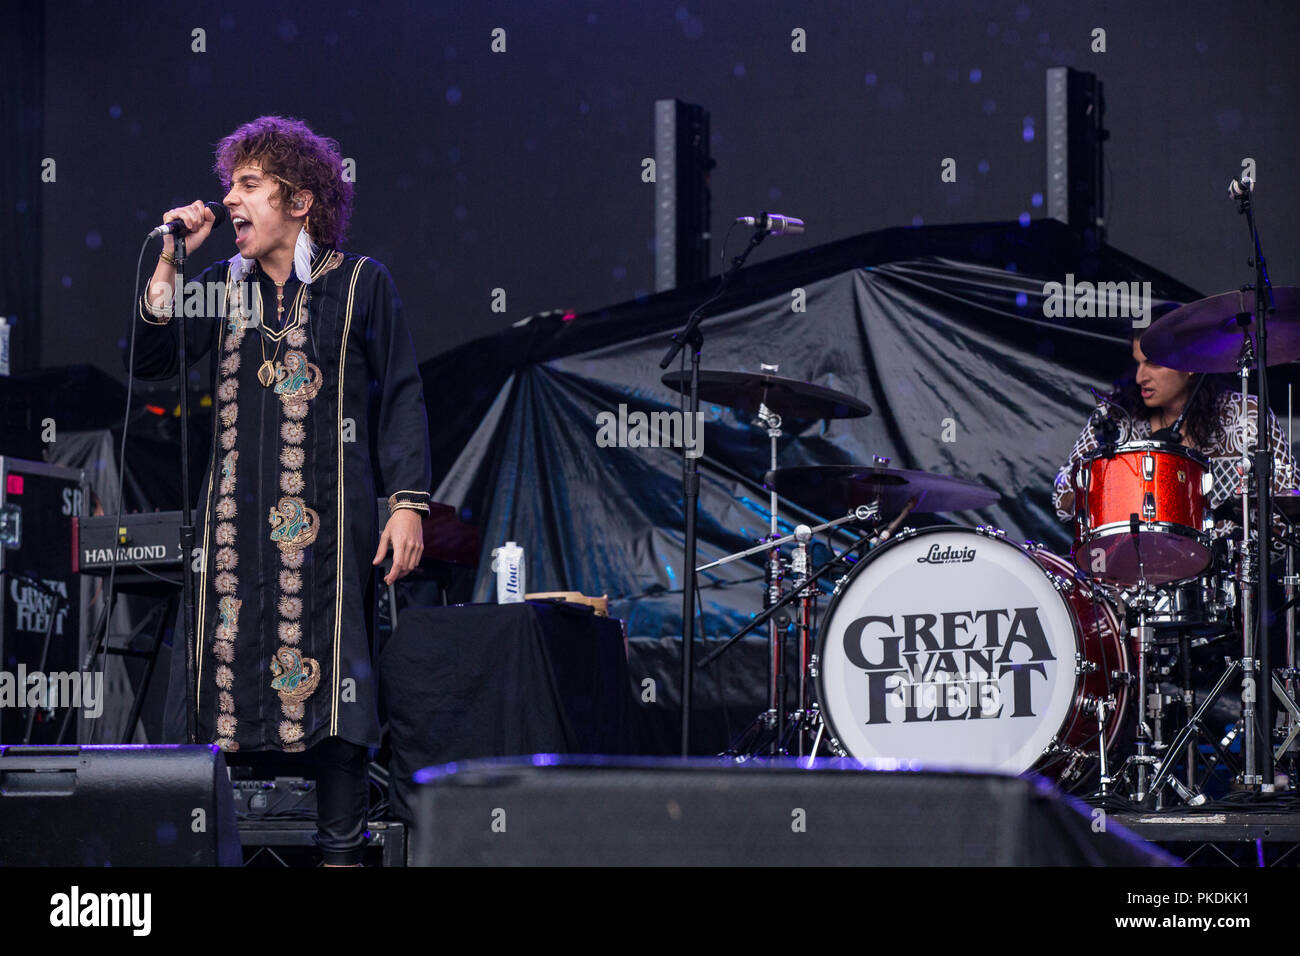 American band Greta Van Fleet performing at Skookum Music Festival in Stanley Park in Vancouver, BC on September 7th, 2018 Stock Photo